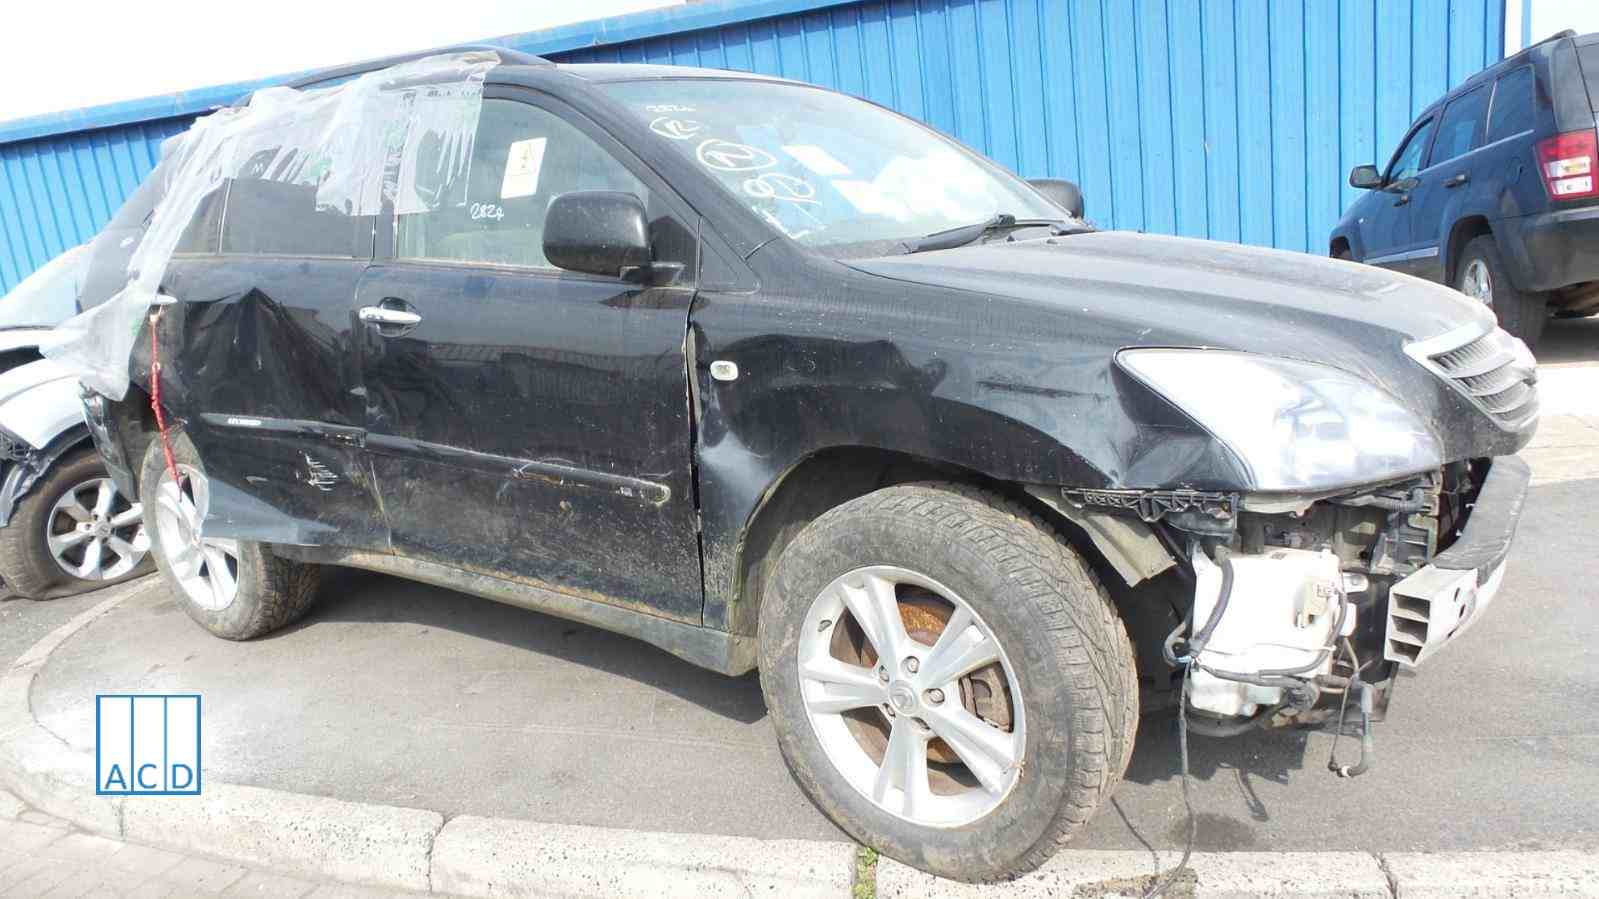 Lexus RX400 3.3L Hybrid 1=Speed Automatic 2008 #2824 01